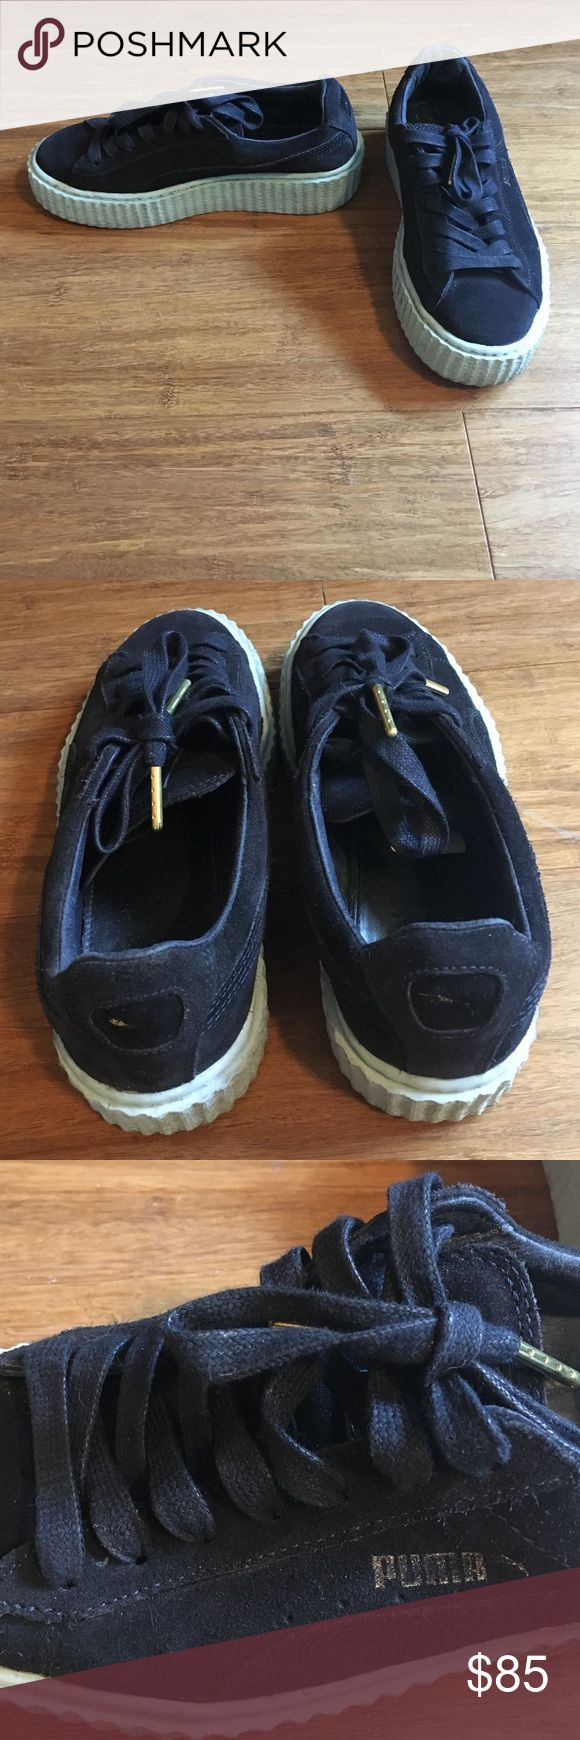 Rihanna Puma Creepers Navy 6 I bought these and they're too small on me. I've tried to wear them a few times but they just tear up my feet. I'm a true 6.5 and these would be good for people who are 5-6. The puma logos are faded even though they've only been worn twice. This is due to the suede material. Make me an offer! Sold out everywhere. Puma Shoes Sneakers